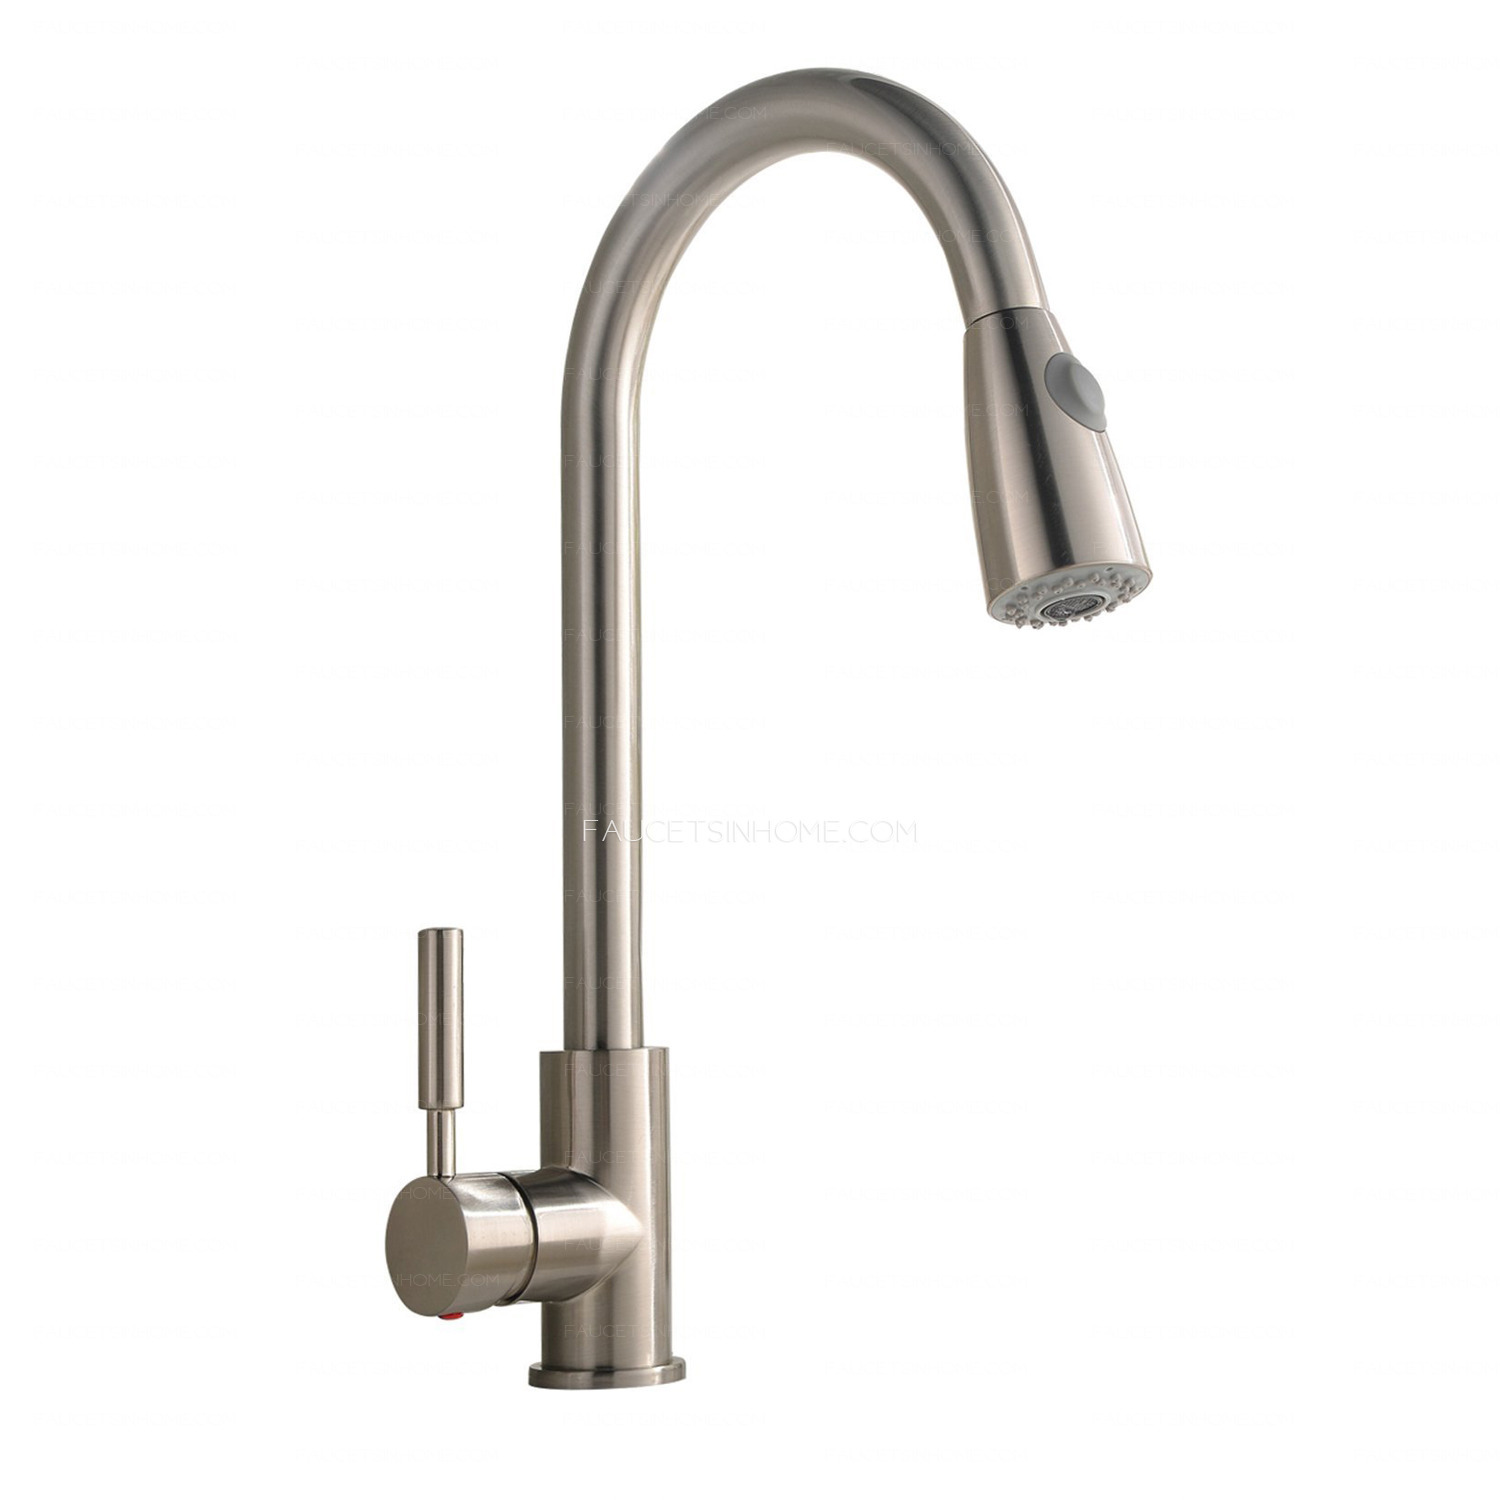 Brushed Nickel Rotatable Brass Pull Down Commercial Kitchen Faucet With Sprayer